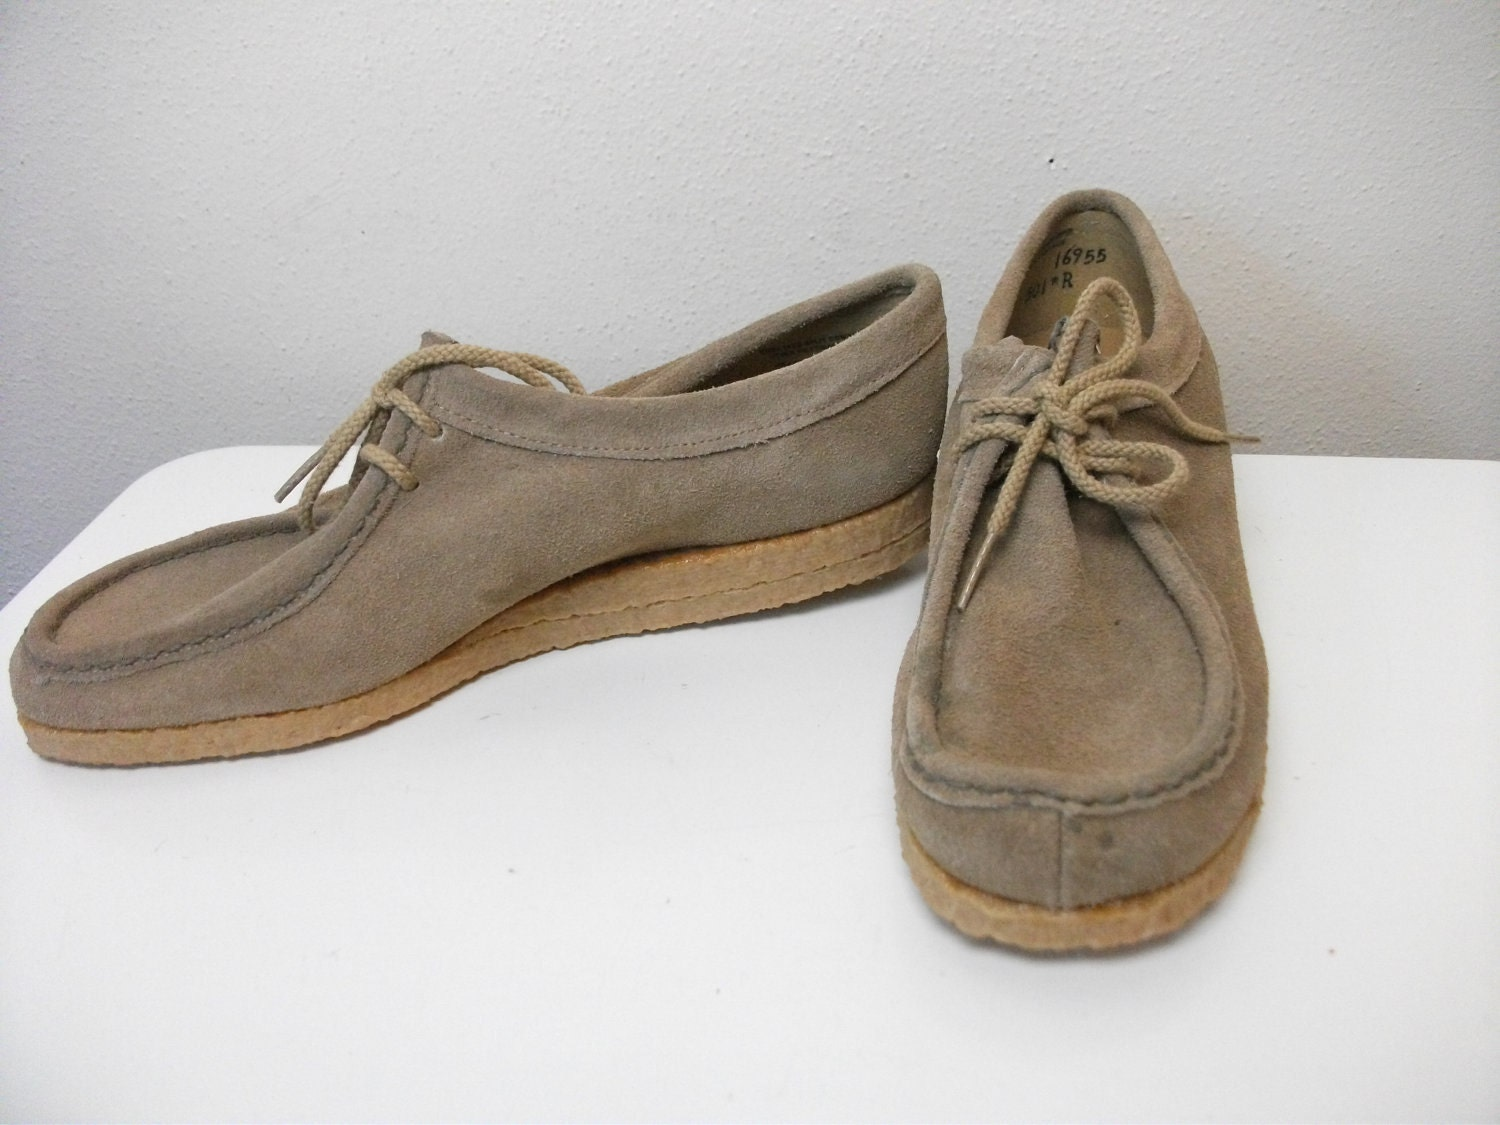 1970s Tan Suede Earth Shoes Size 7 5